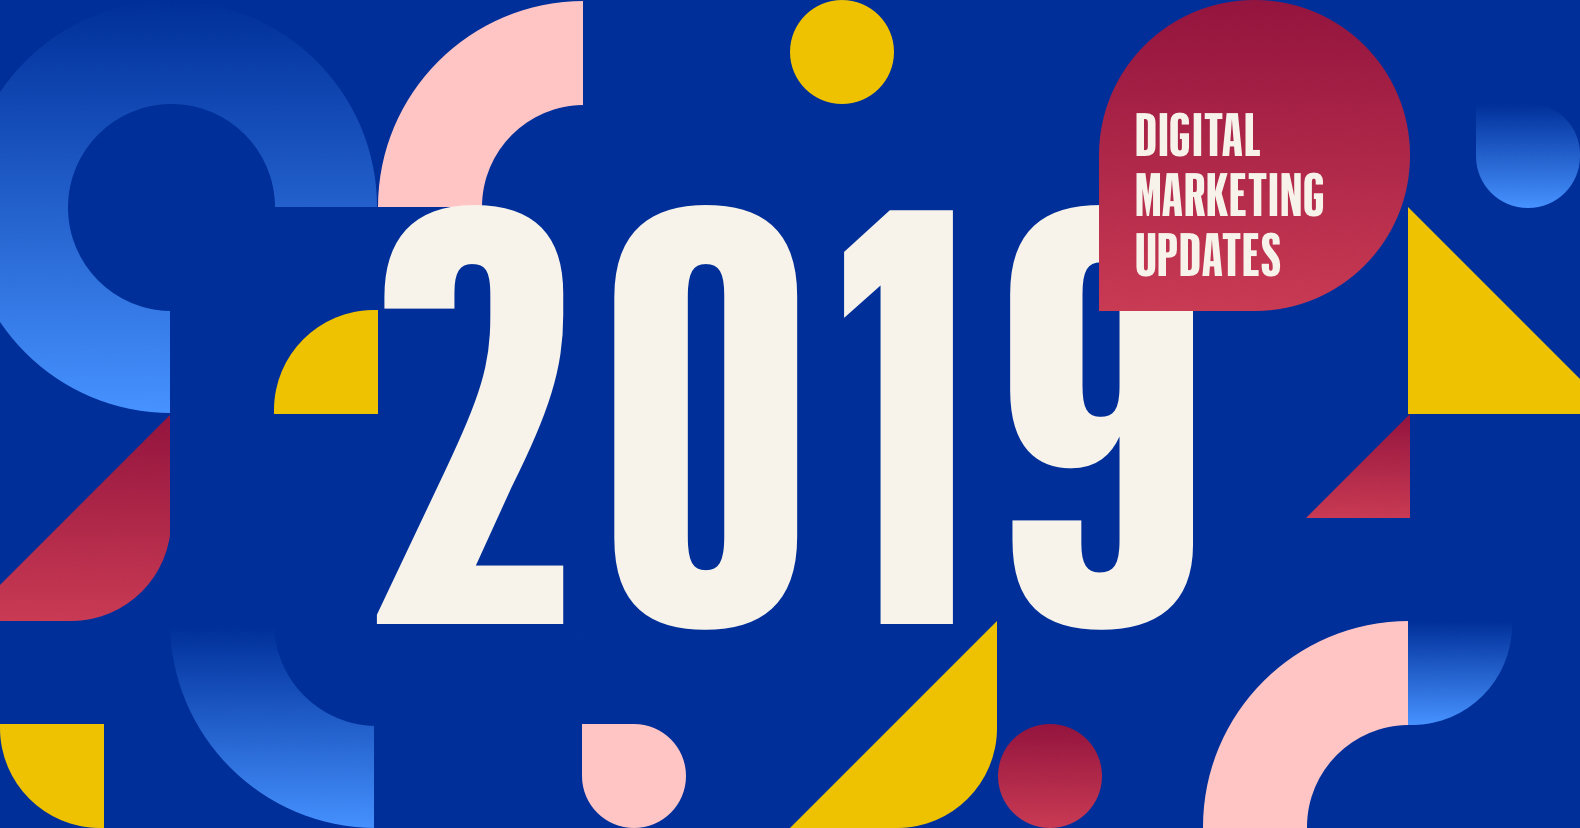 5 Digital Marketing Updates That Will Seriously Shake Things Up In 2019